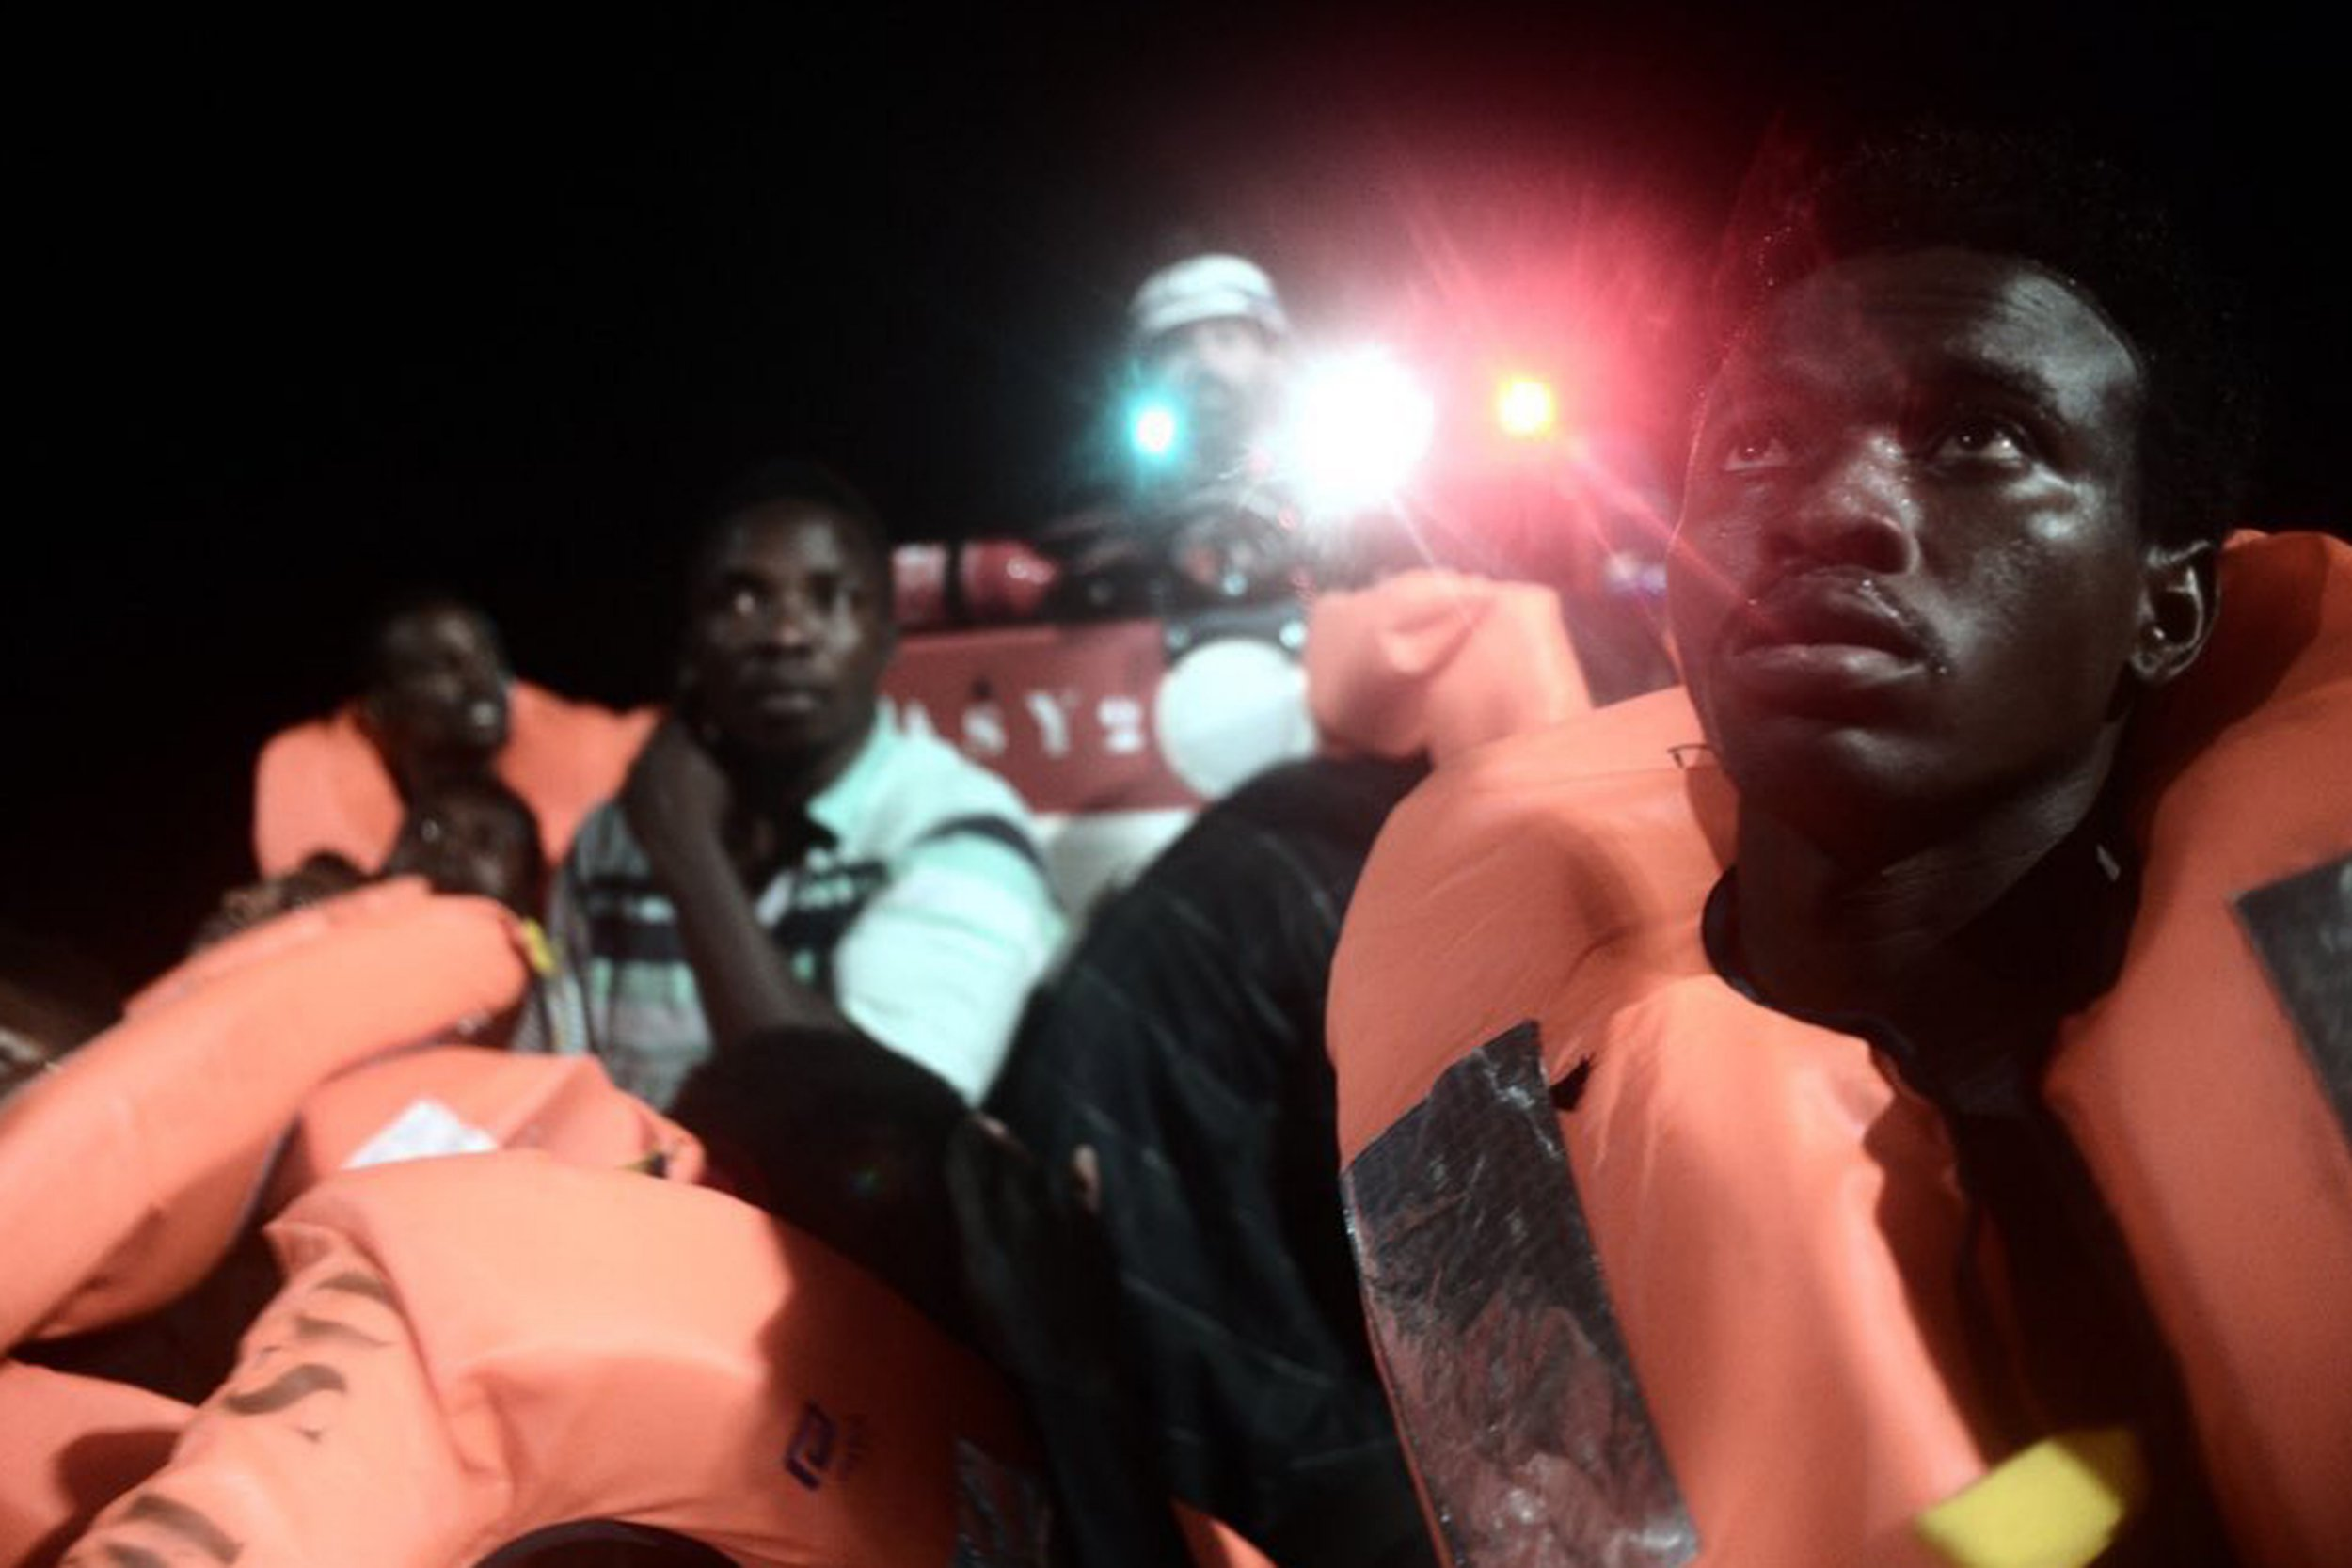 """CORRECTS NAME OF BOAT This undated photo released by by French NGO """"SOS Mediterranee"""" on Monday June 11, 2018 and posted on it's Twitter account, shows migrants about to board SOS Mediterranee's Aquarius ship and MSF (Doctors Without Borders) NGOs, in the Mediterranean Sea. Italy and Malta dug in for a second day and refused to let the rescue ship Aquarius with 629 people aboard dock in their ports, leaving the migrants at sea as a diplomatic standoff escalated under Italy's new anti-immigrant government. (Kenny Karpov/SOS Mediterranee via AP)"""